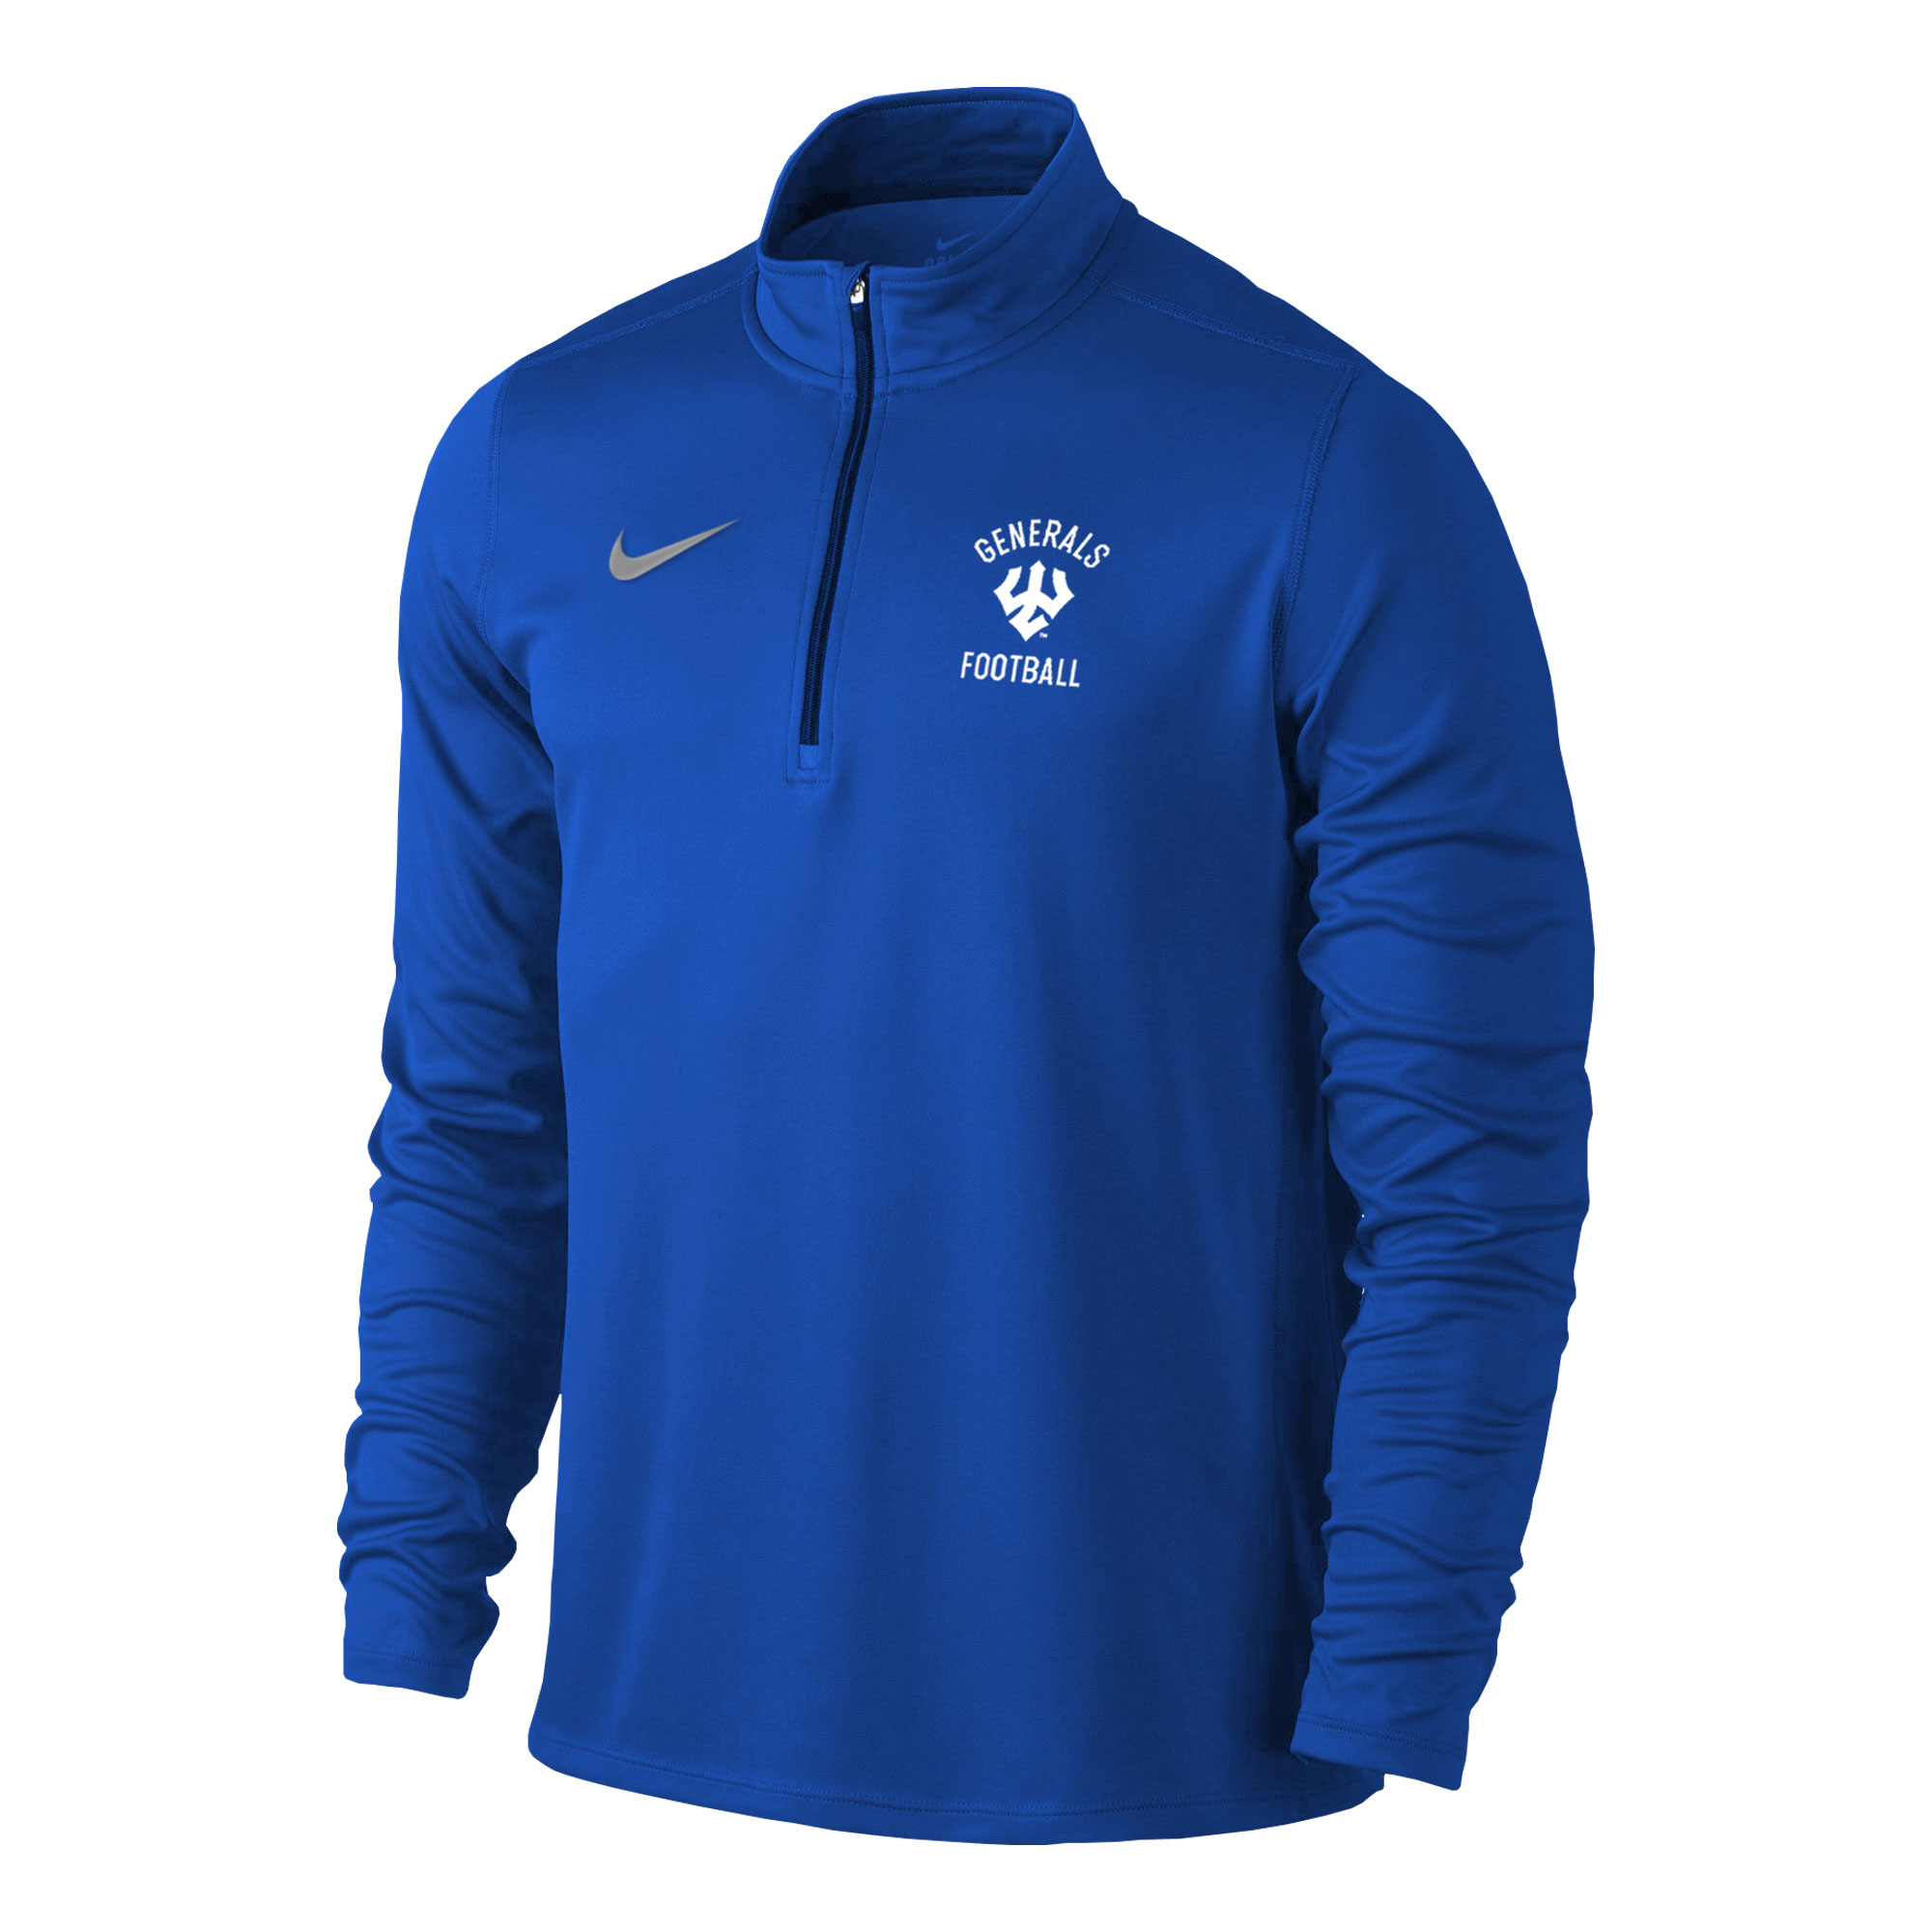 Nike Football Element 1/4 Zip, Royal